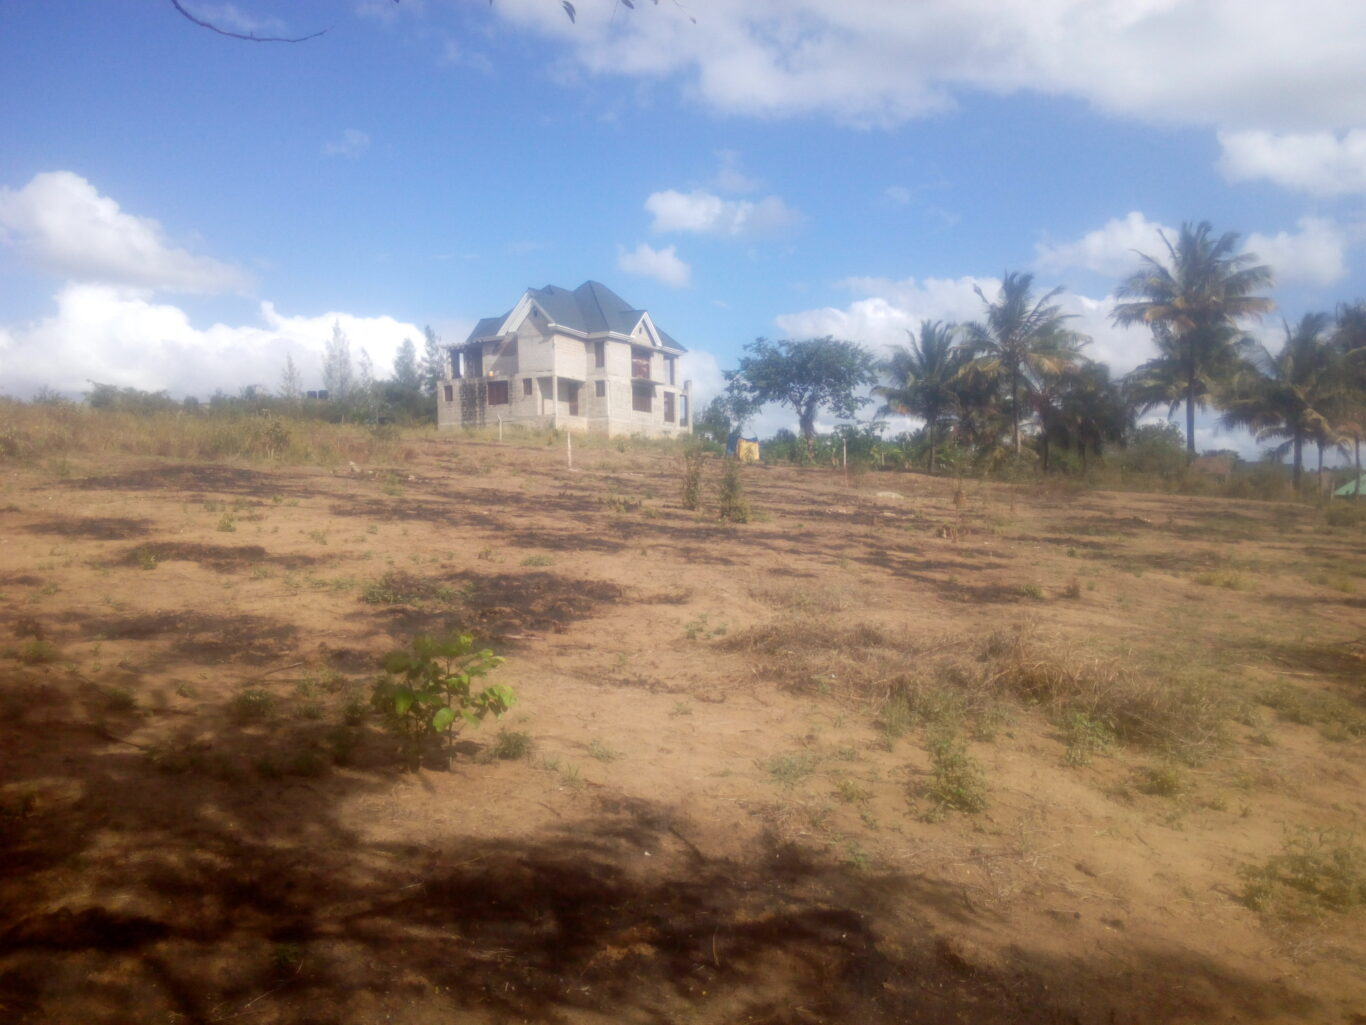 5315Sqm titled flat plot for sale